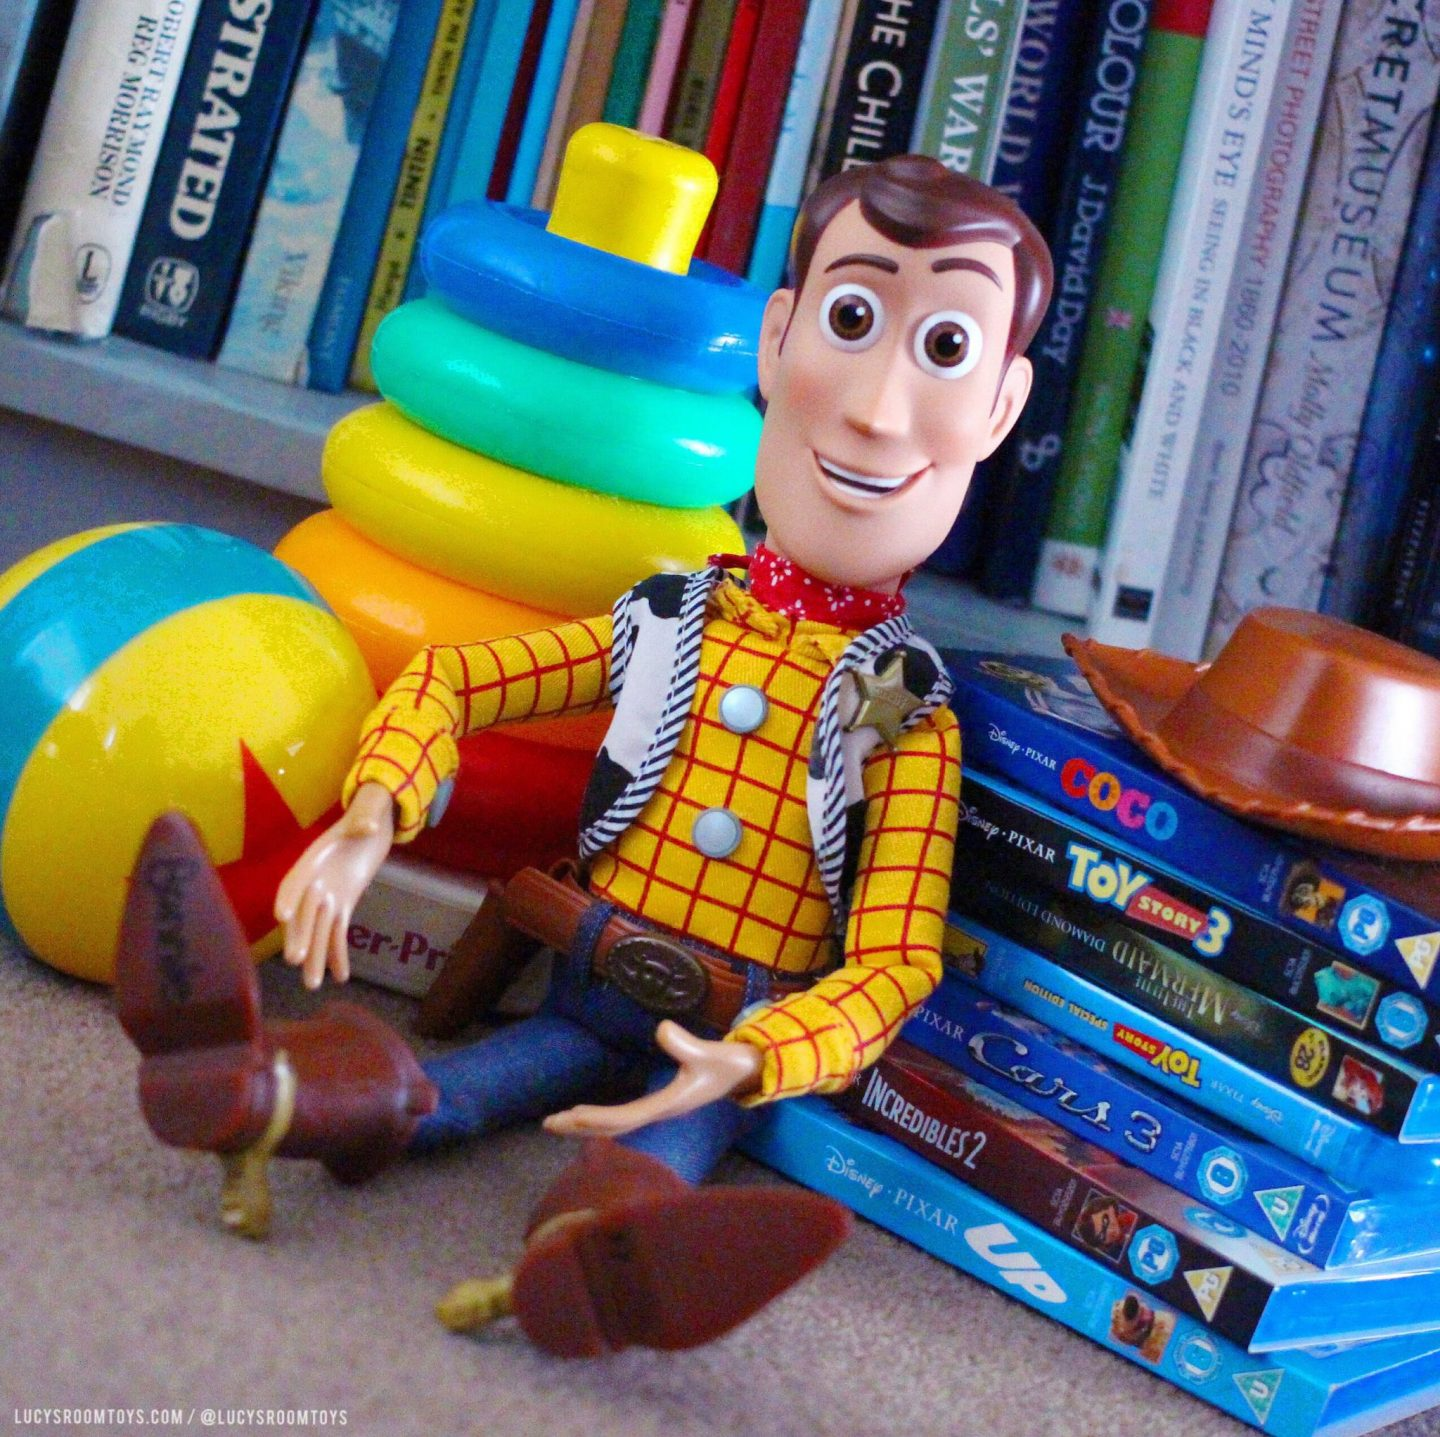 ShopDisney Toy Story 4 Woody Doll (Possible TS4 Spoilers)